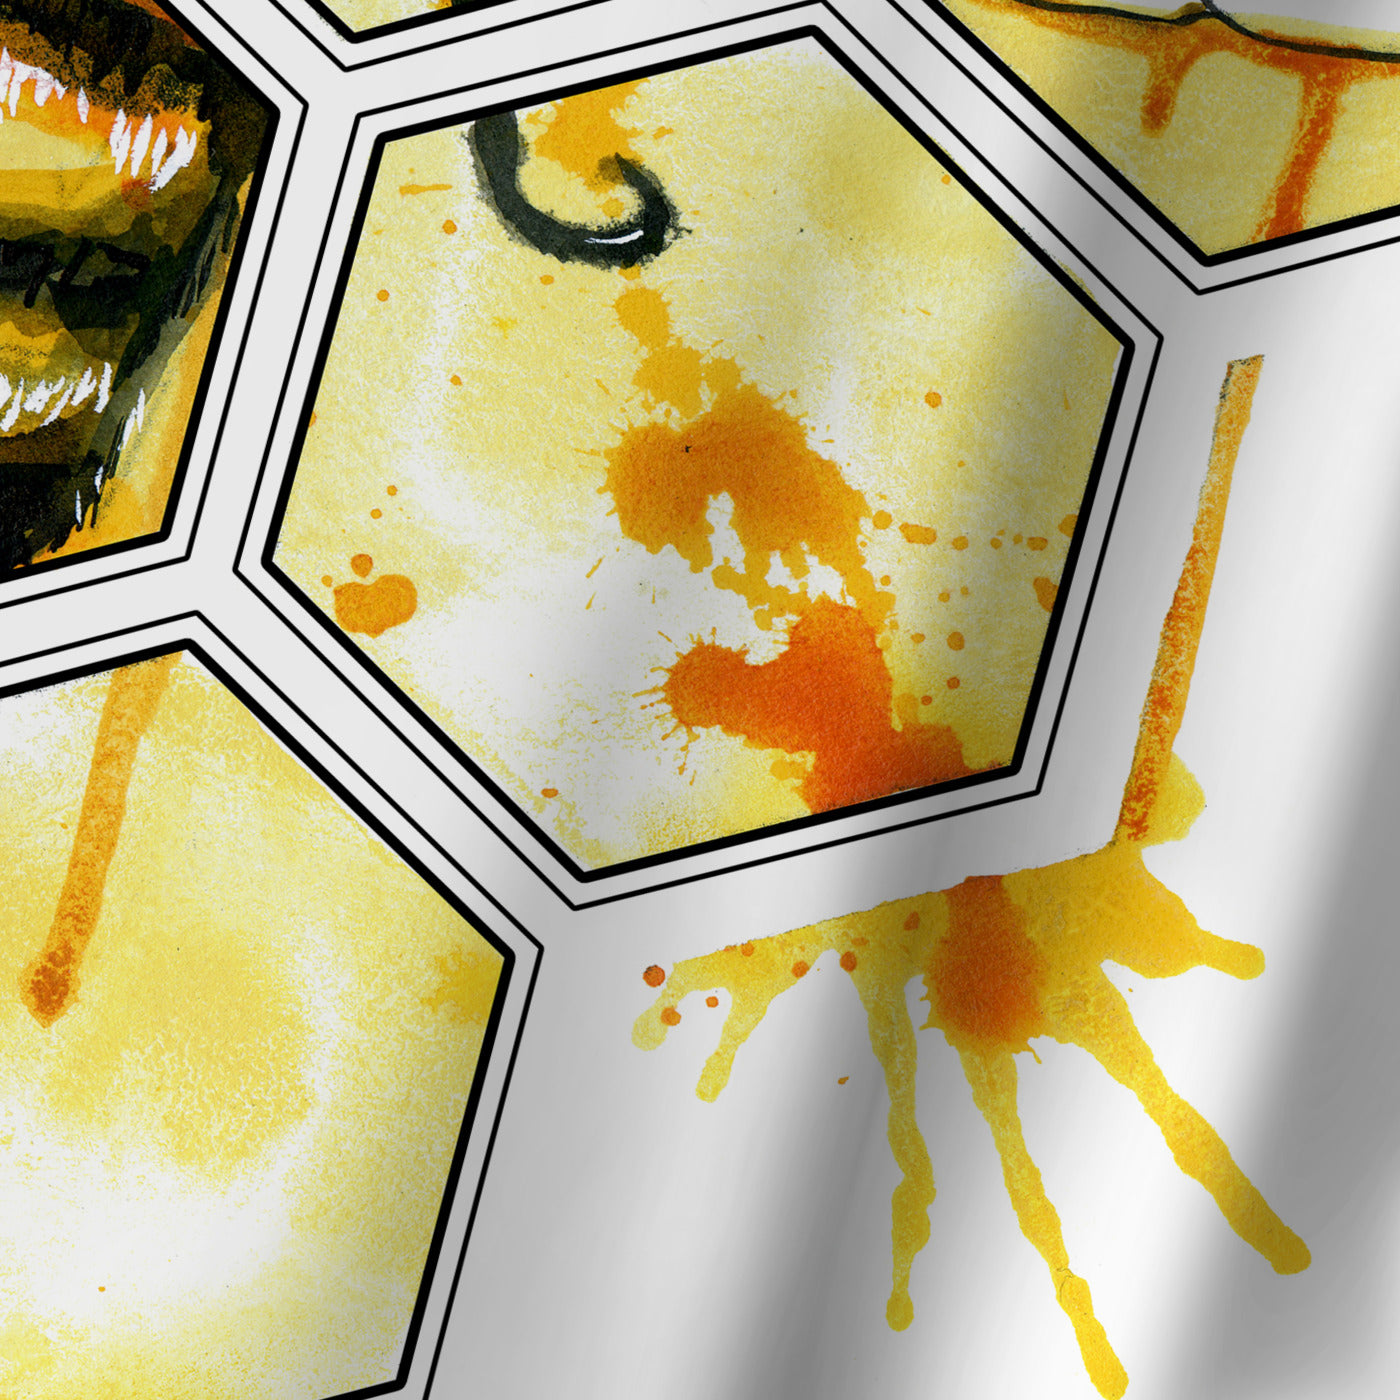 Hive Mentality by Sam Nagel Shower Curtain -  - Americanflat